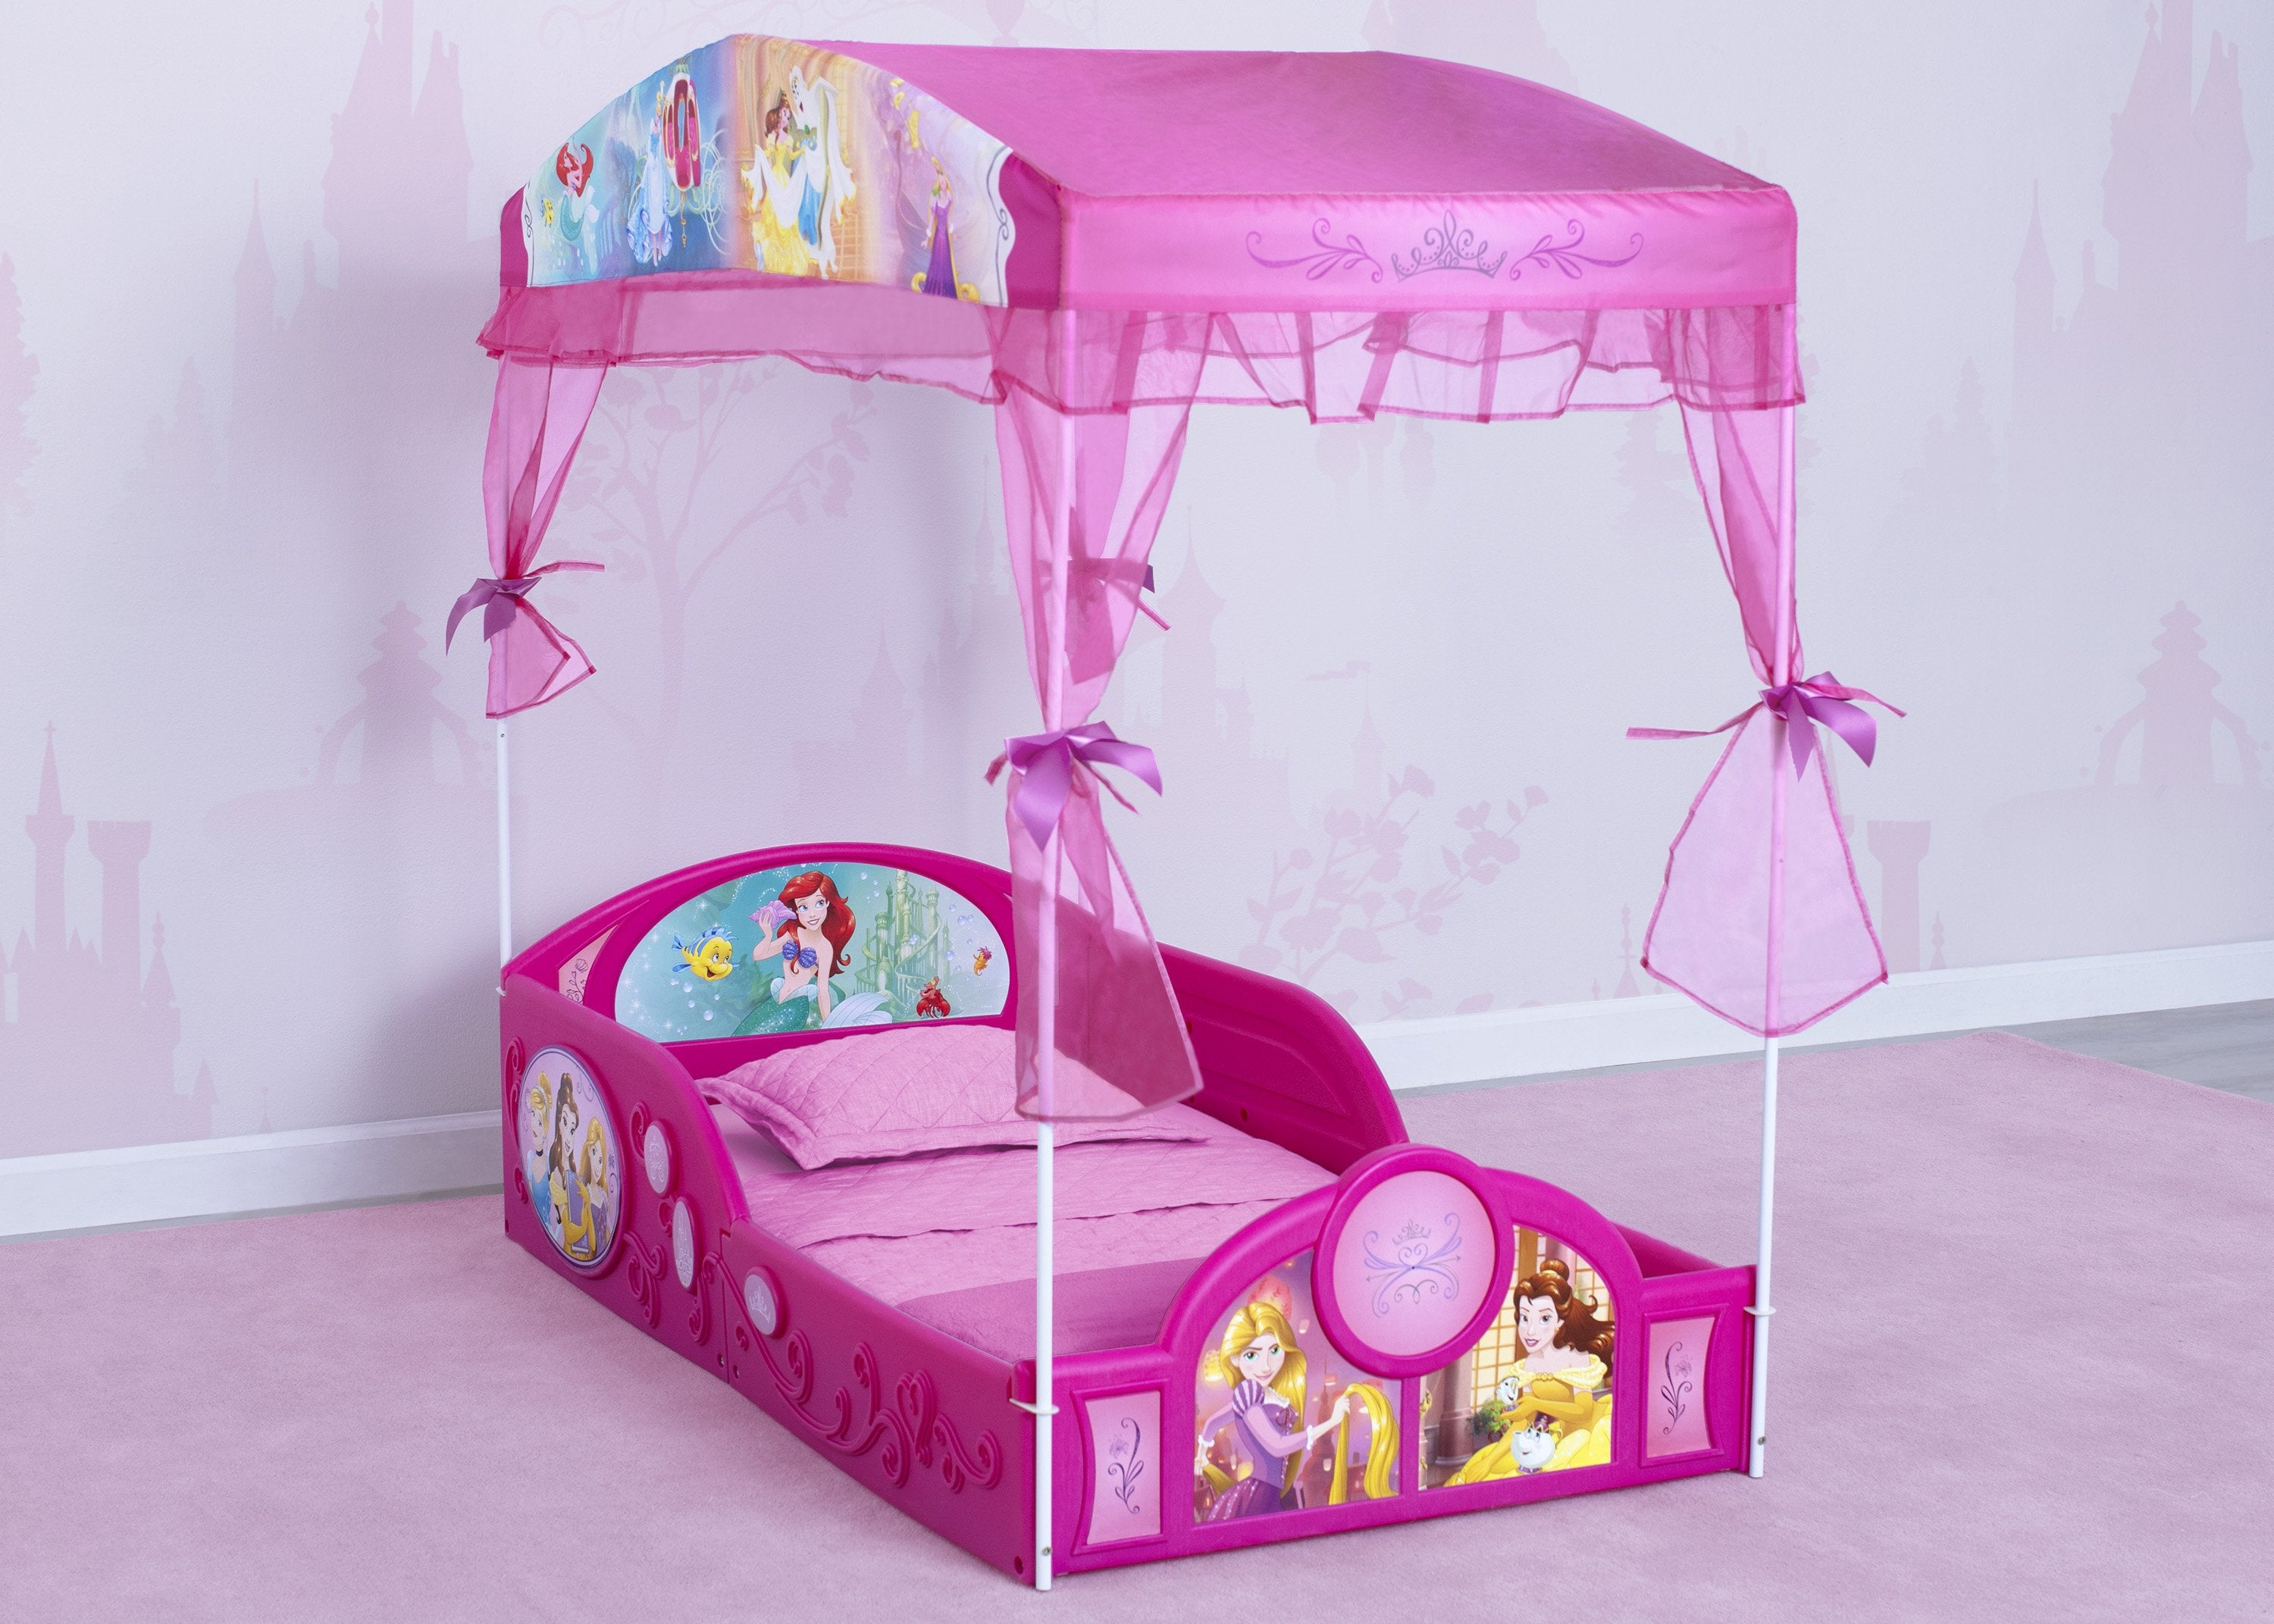 Disney Princess Plastic Sleep And Play Toddler Bed With Canopy By Delt Delta Children